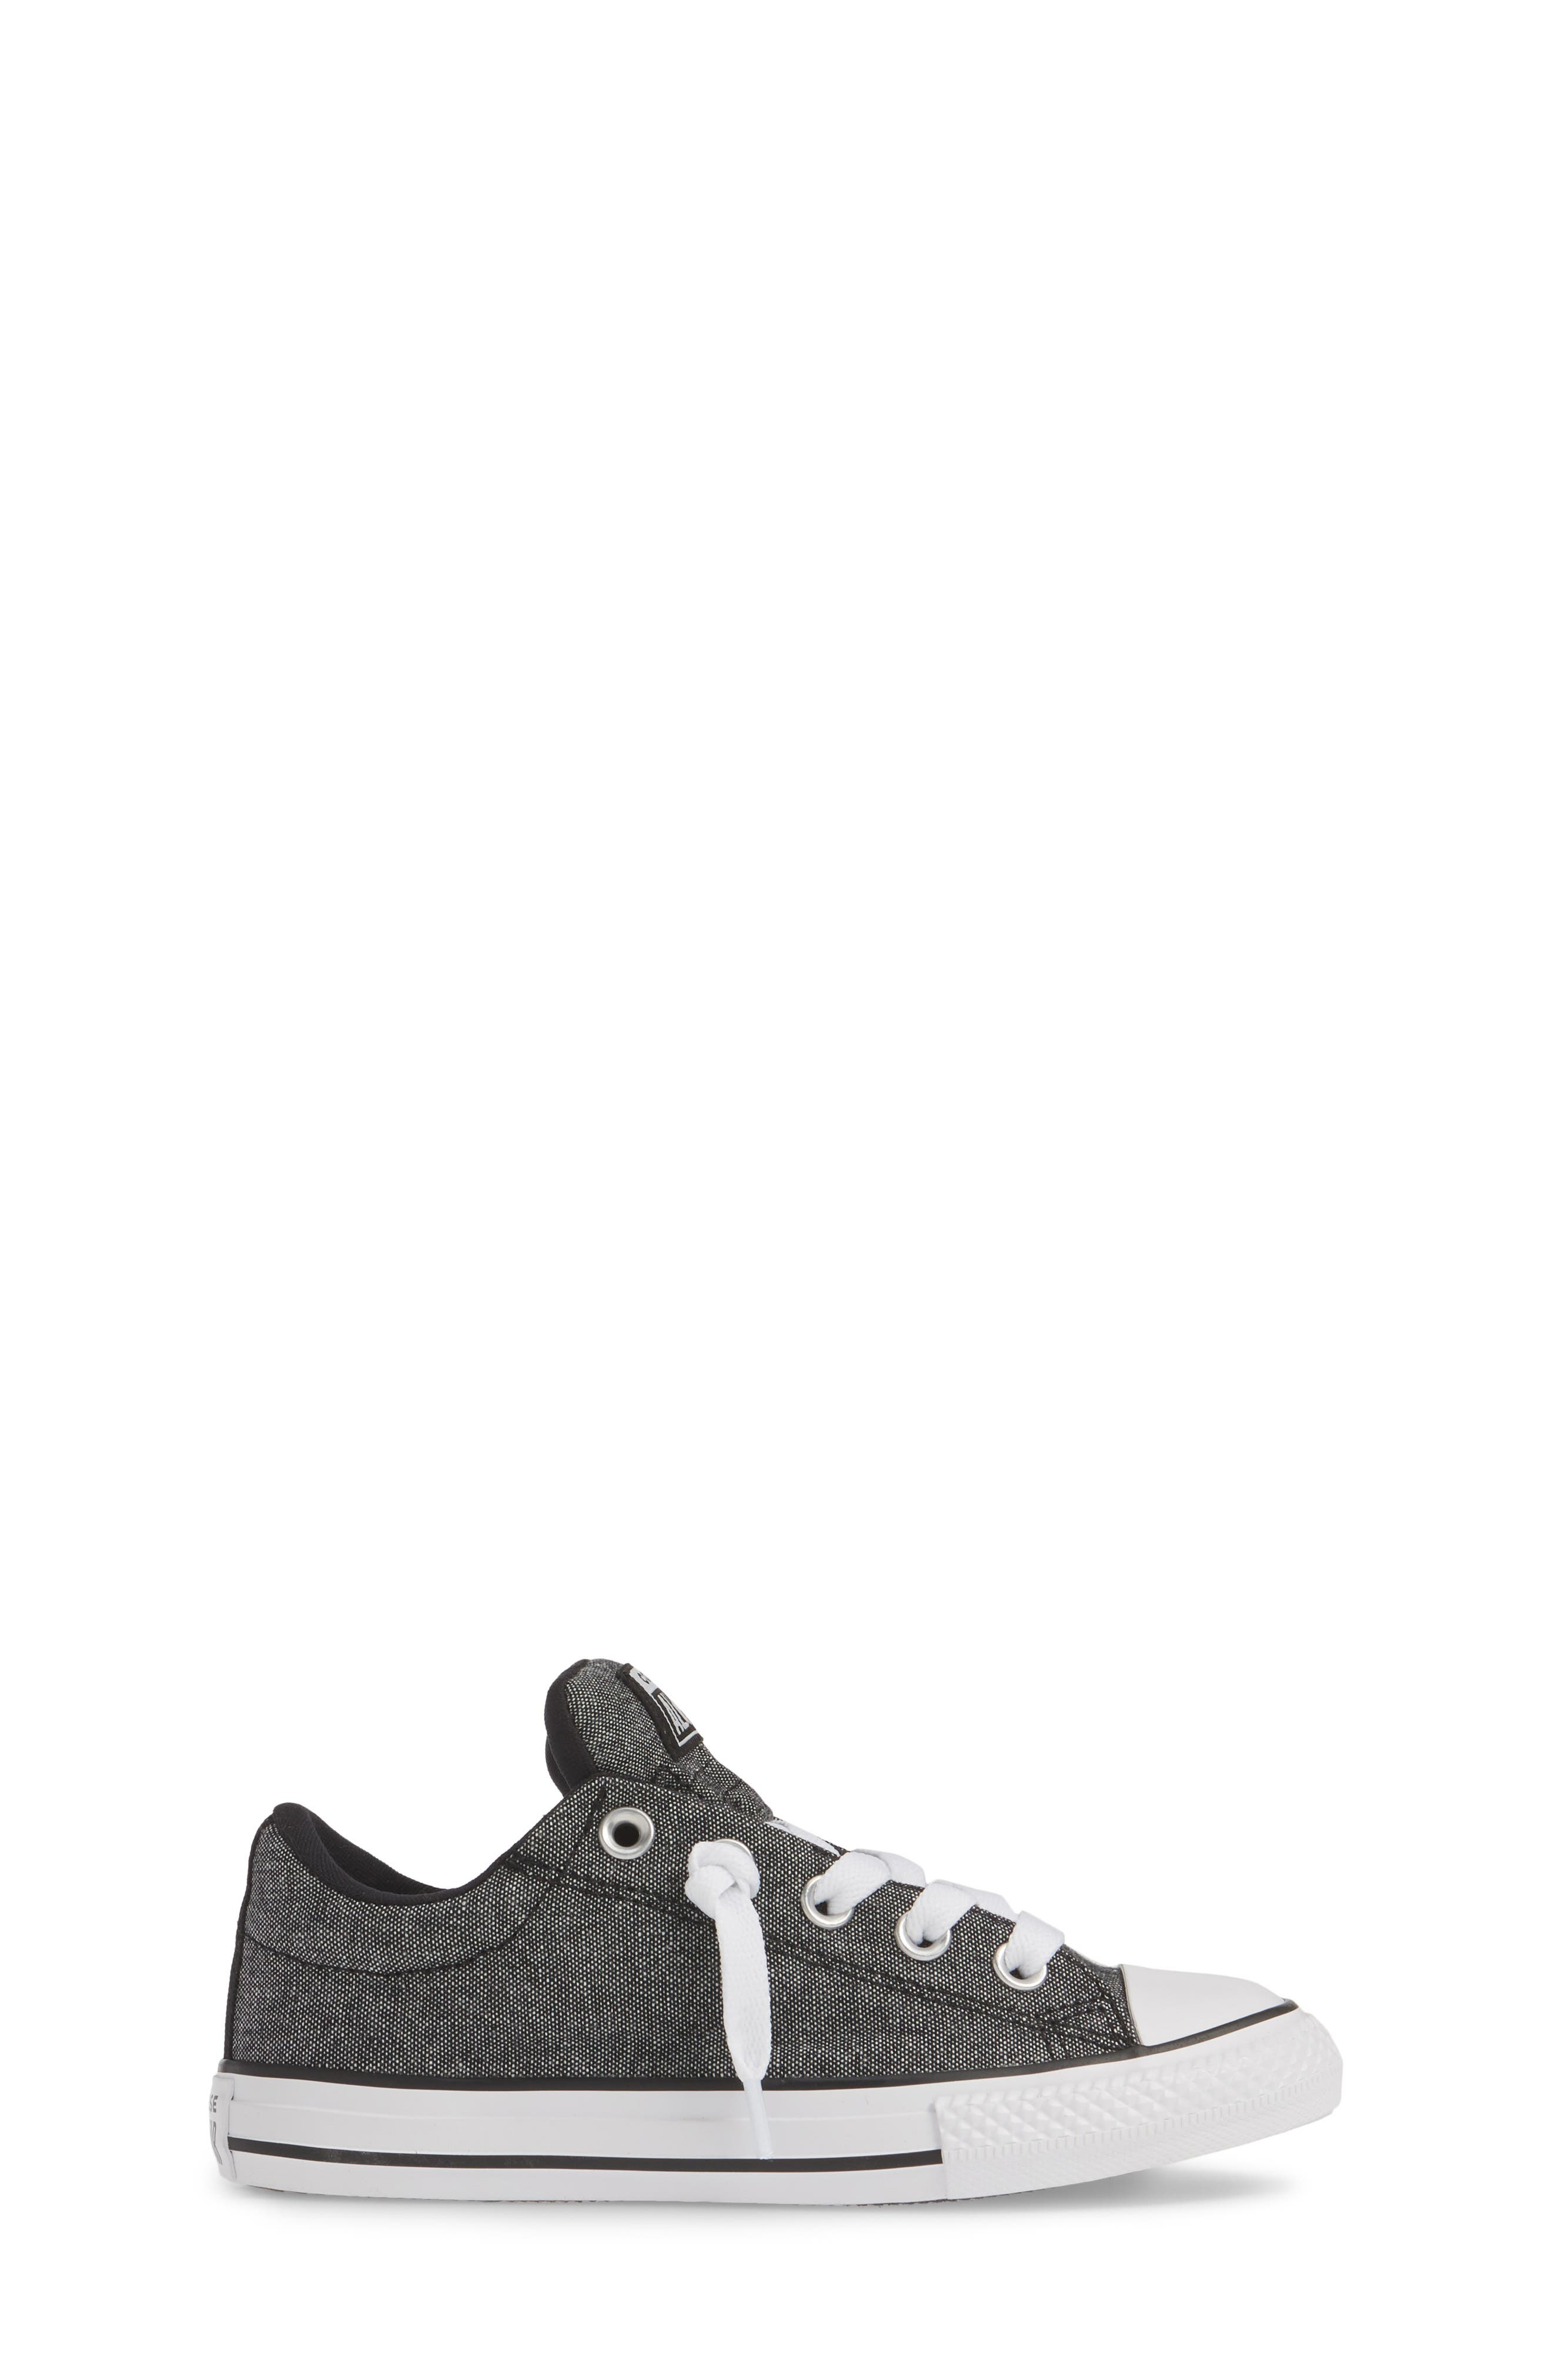 CONVERSE, Chuck Taylor<sup>®</sup> All Star<sup>®</sup> Street Sneaker, Alternate thumbnail 3, color, BLACK/ BLACK/ WHITE